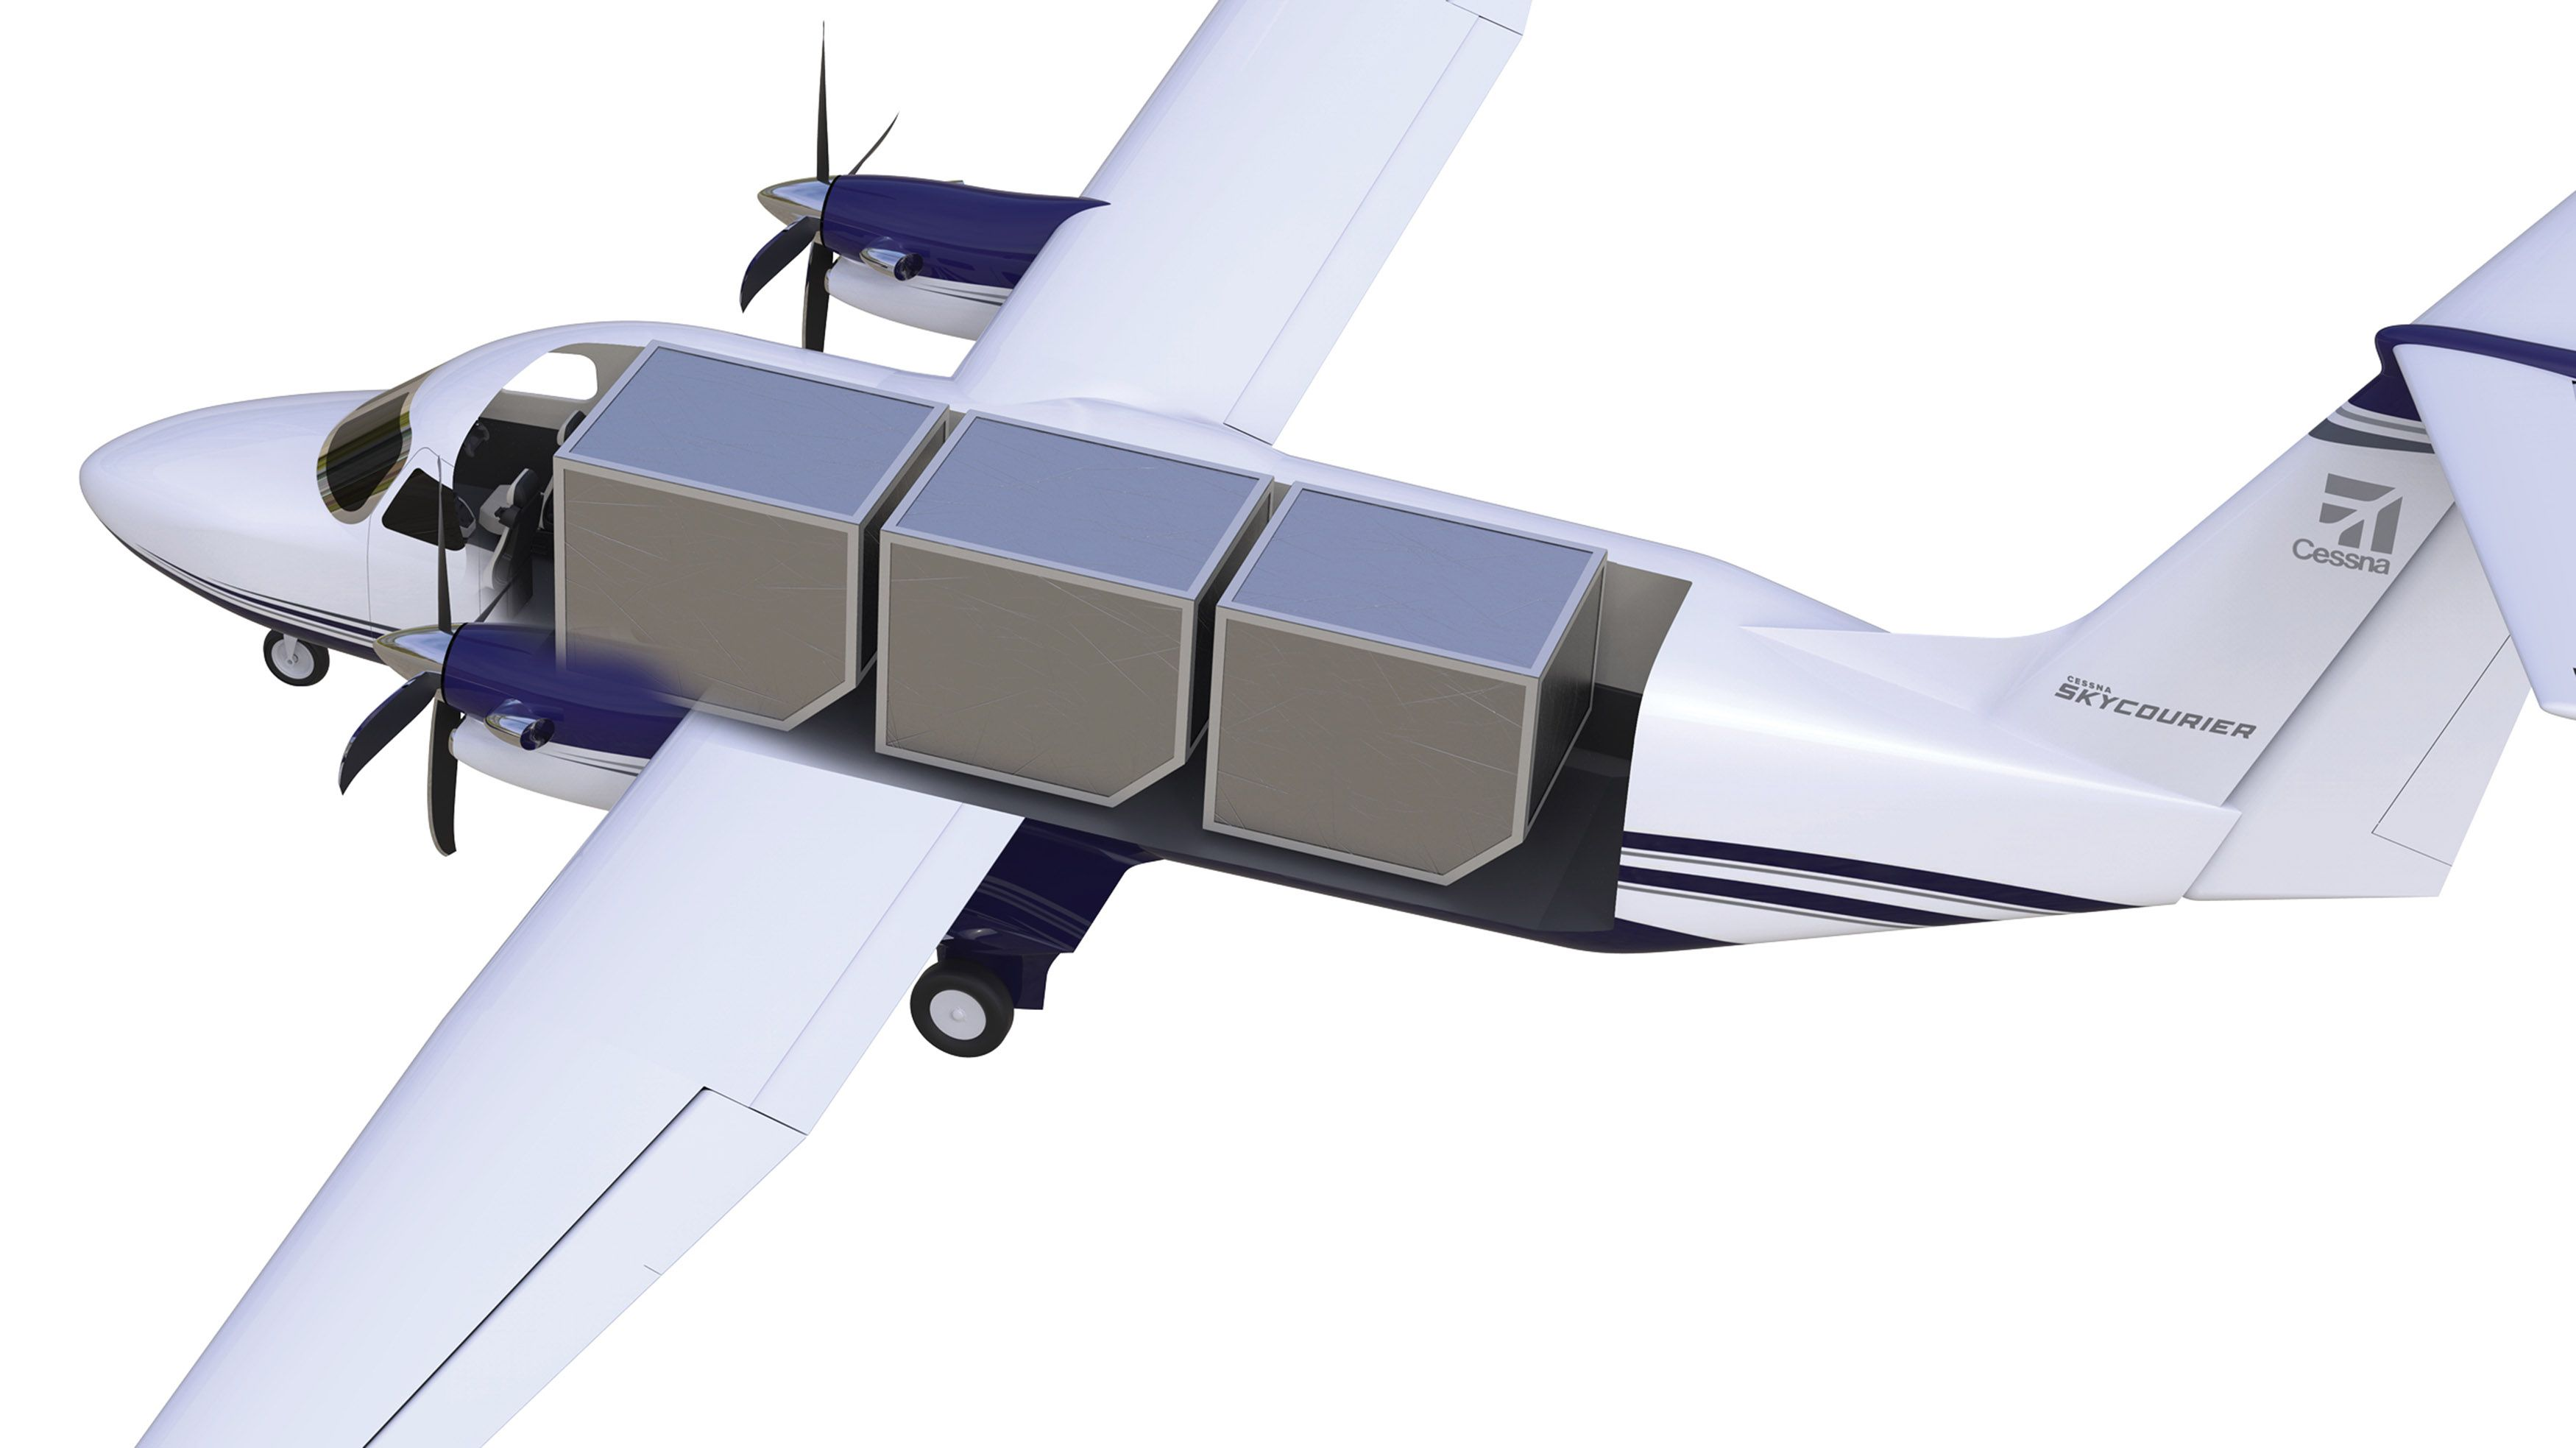 The Cessna SkyCourier 408 is a high-wing, twin-engine, turboprop